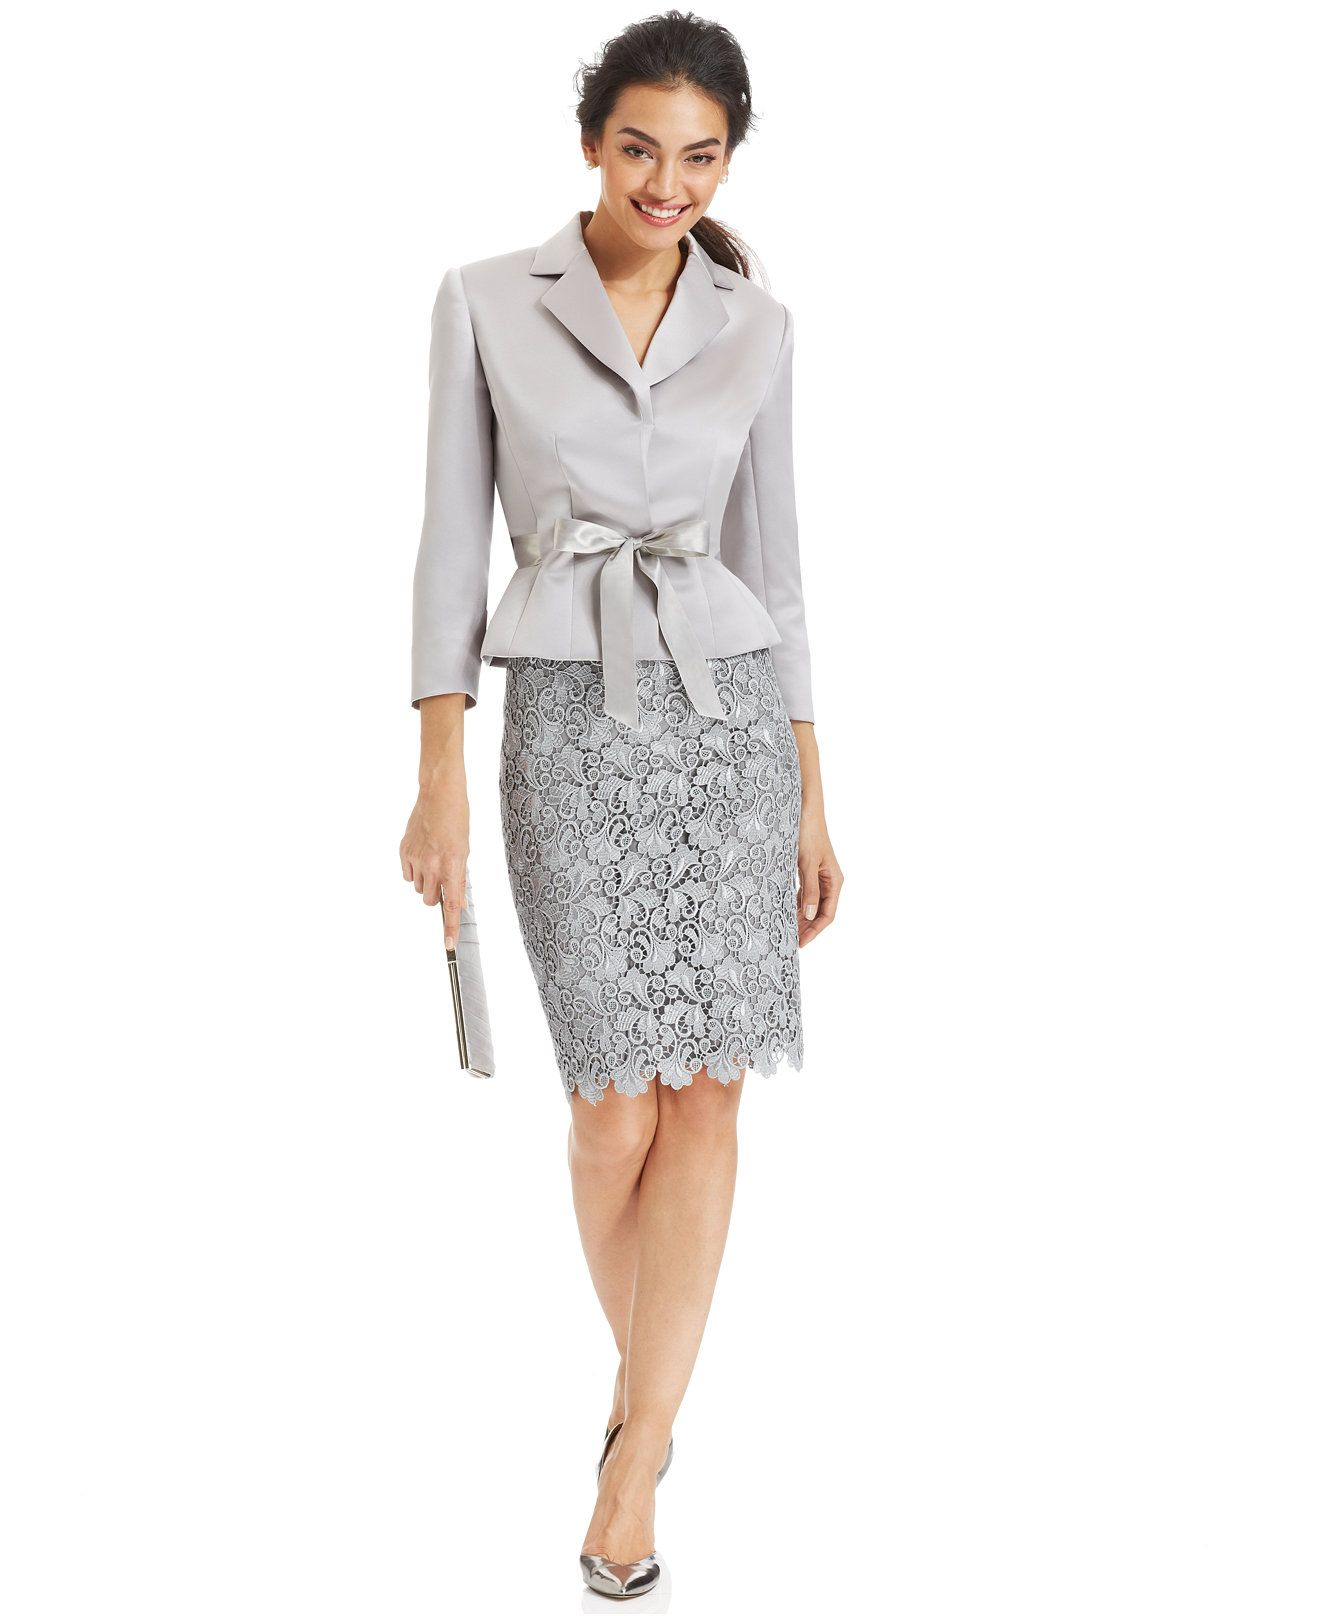 Tahari ASL Belted Jacket & Lace Skirt Suit - Wear to Work - Women ...